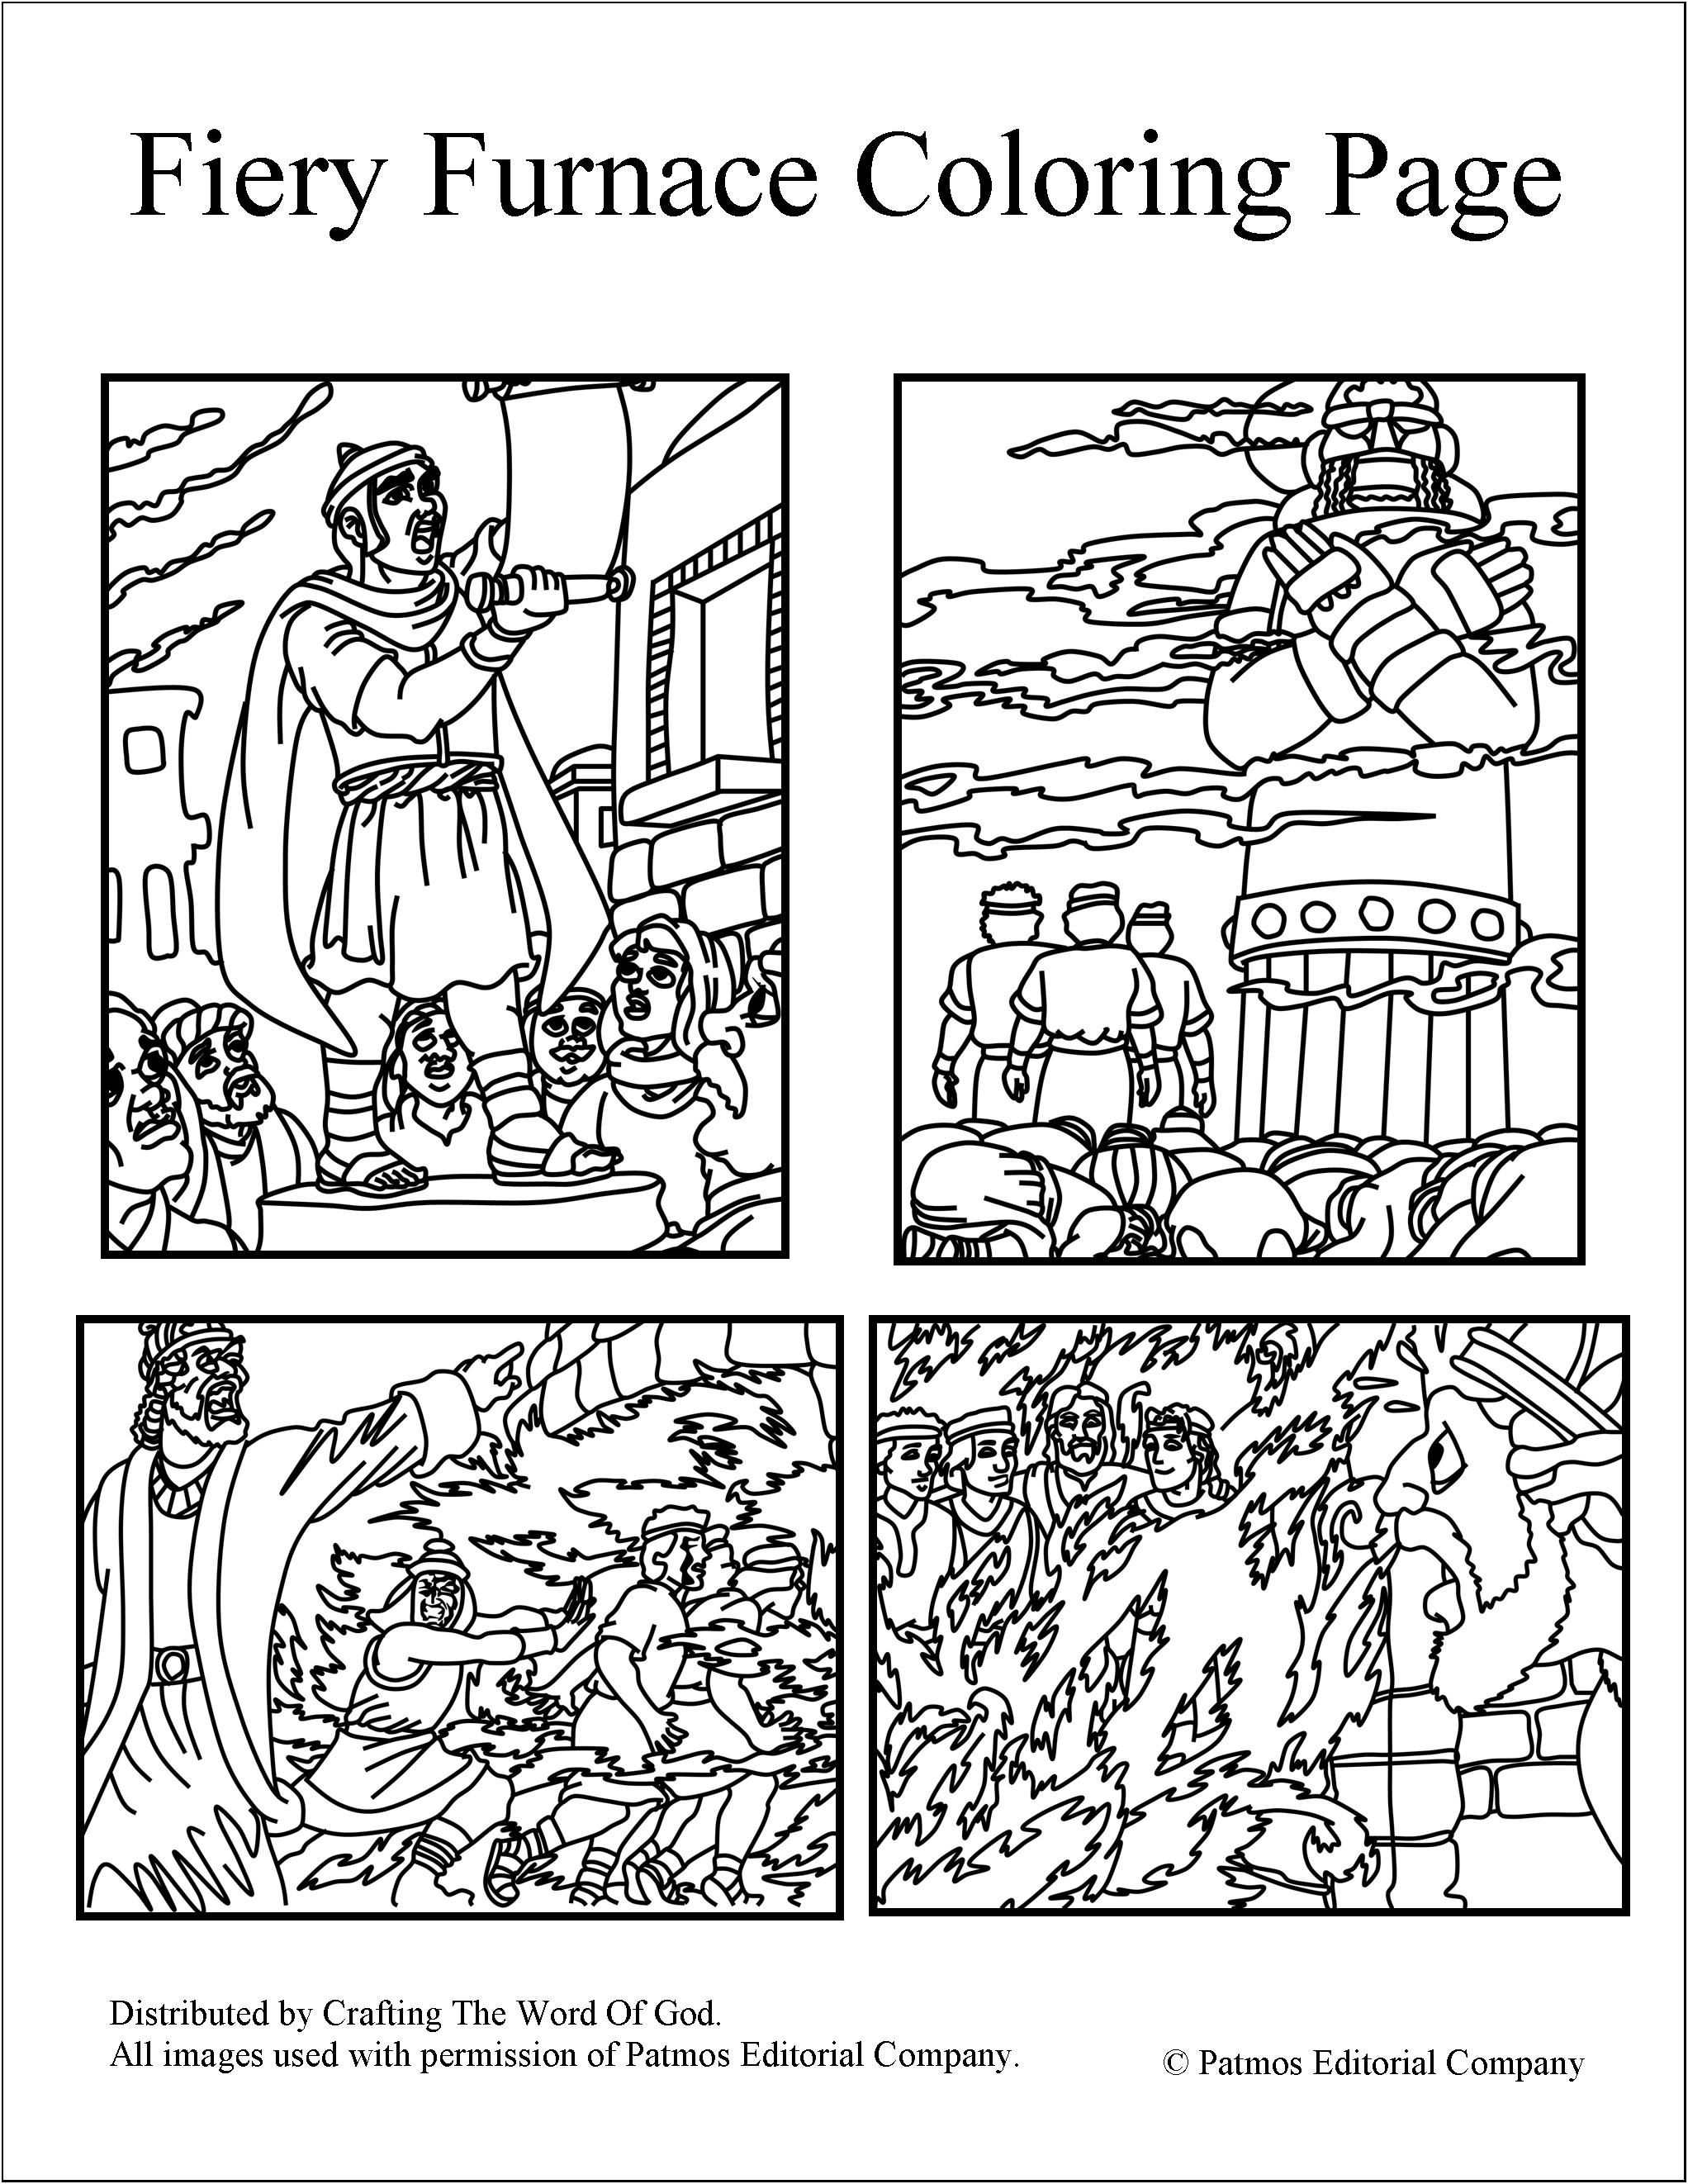 Fiery Furnace Coloring Pages (Day 3) | Hora feliz | Pinterest | Hora ...